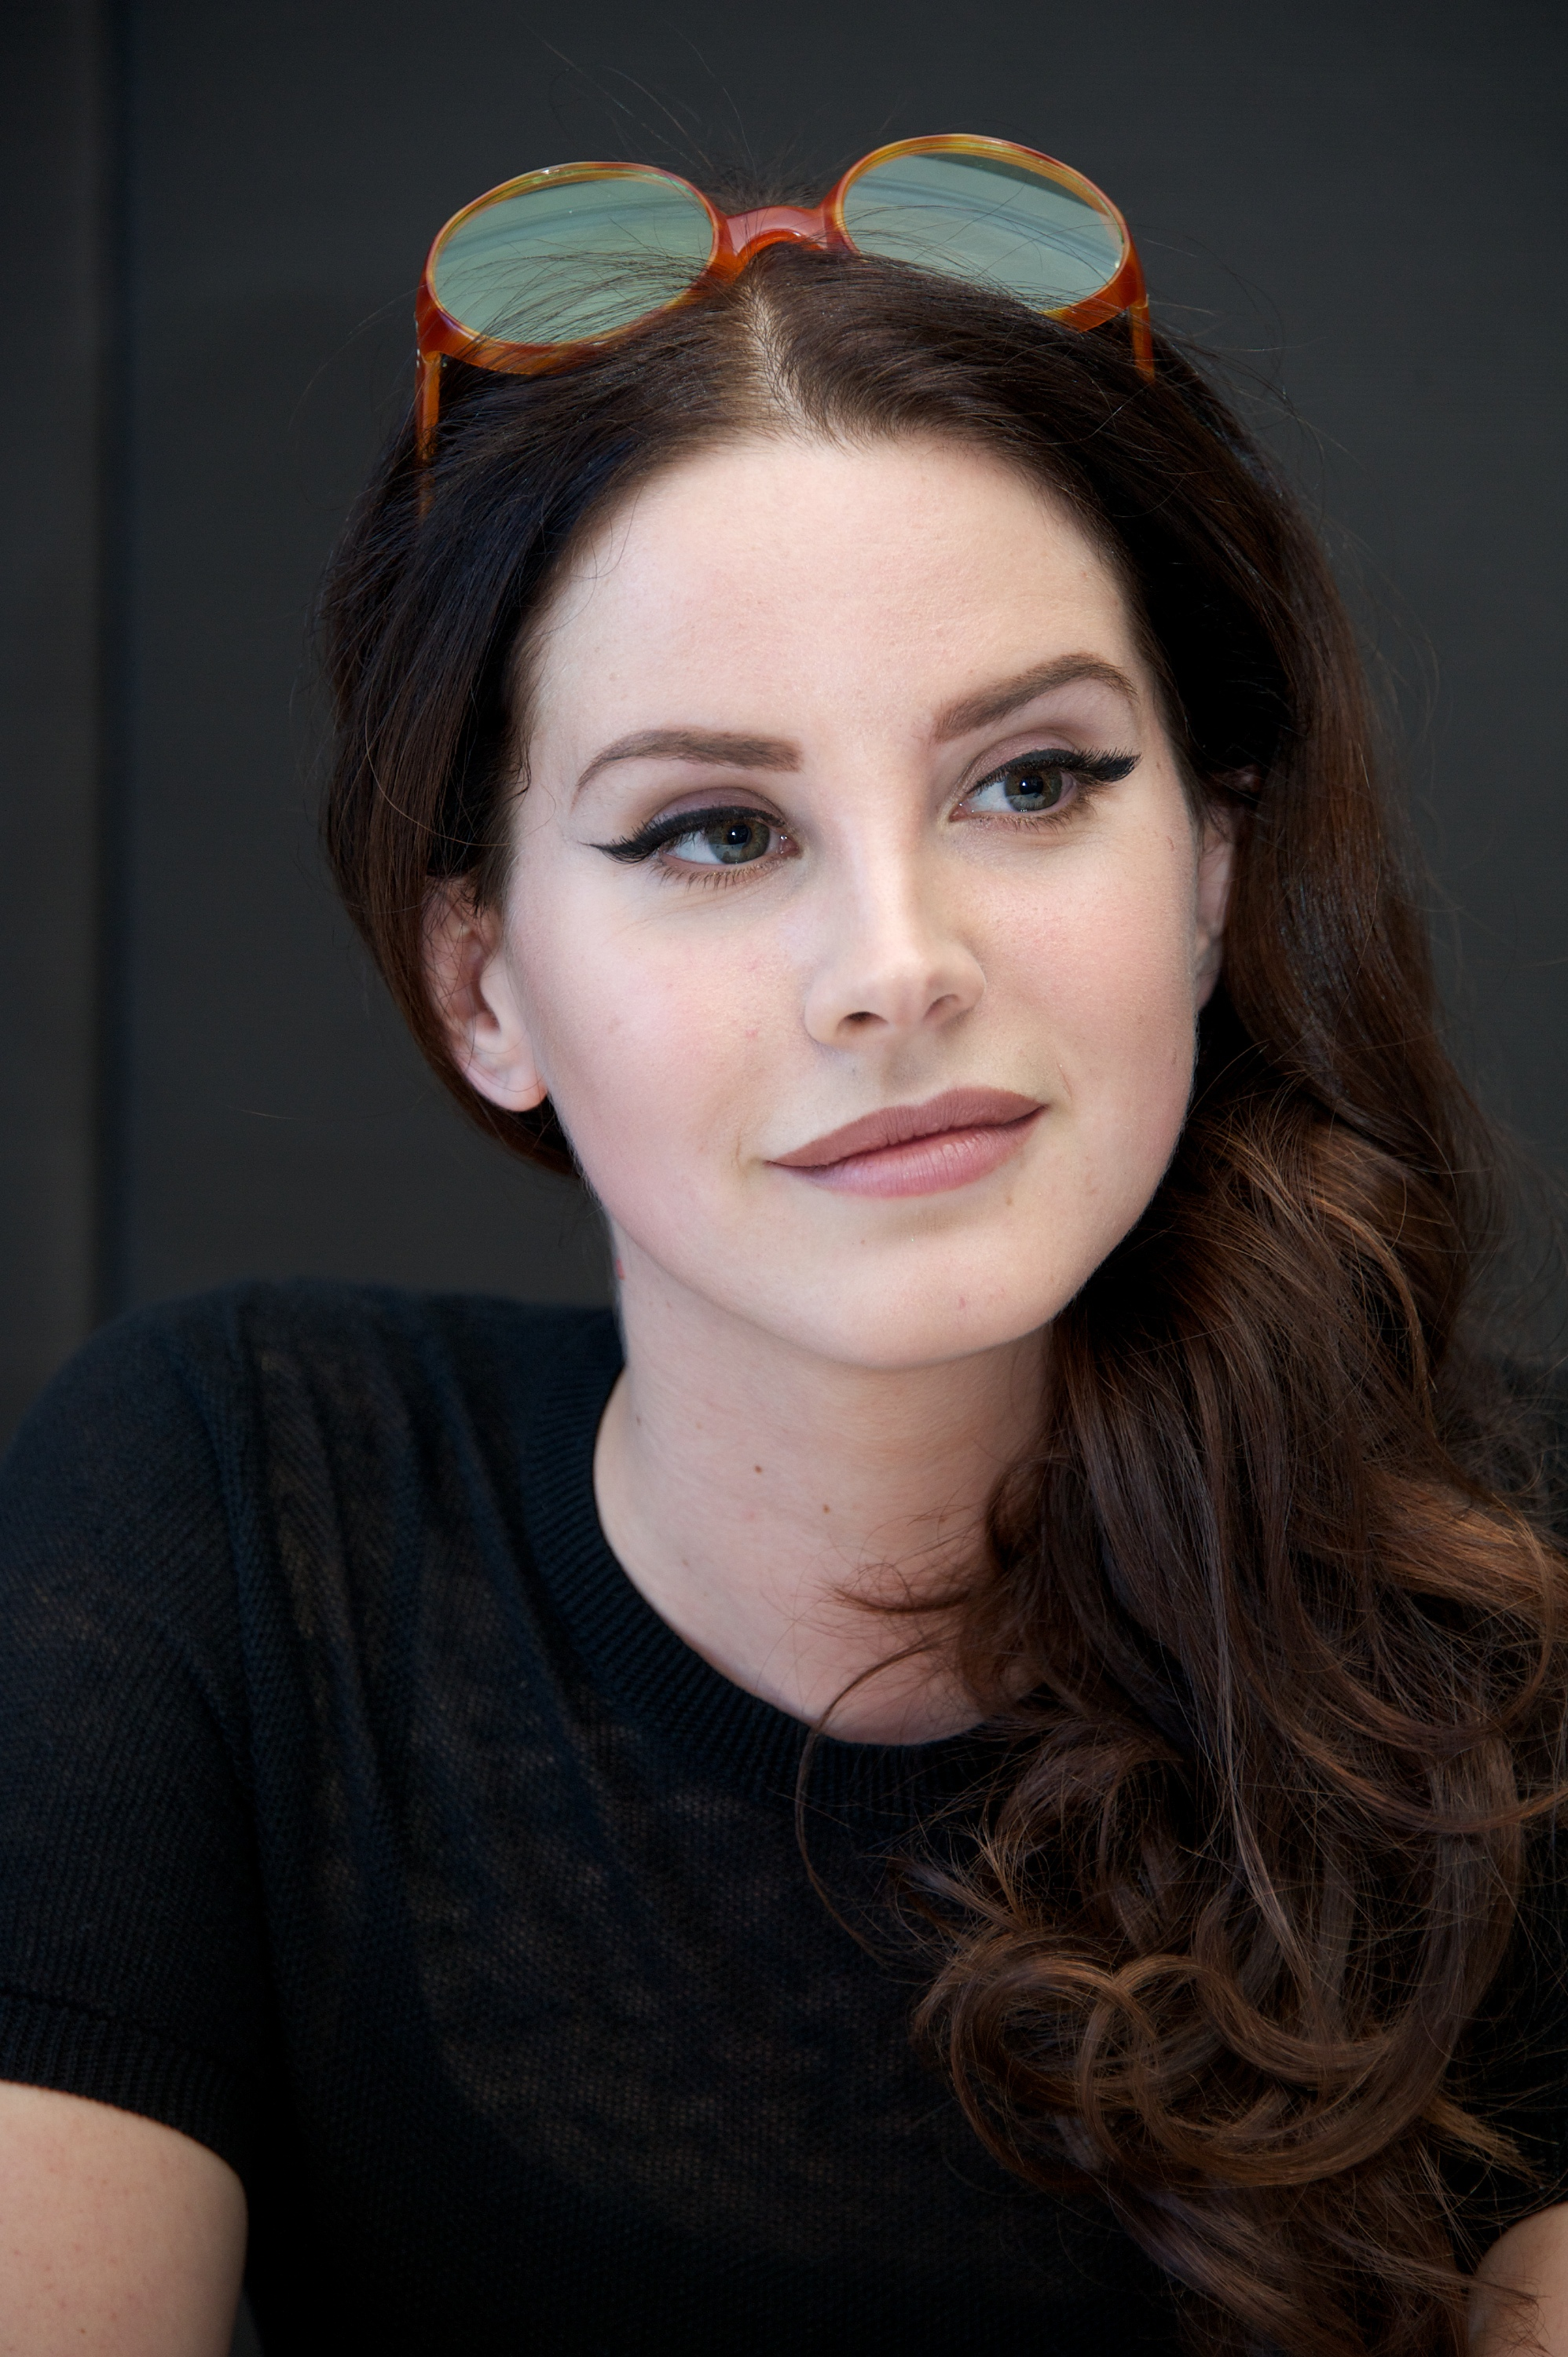 Lana Del Rey Clarifies 'Anti-Feminist' Comments to James Franco